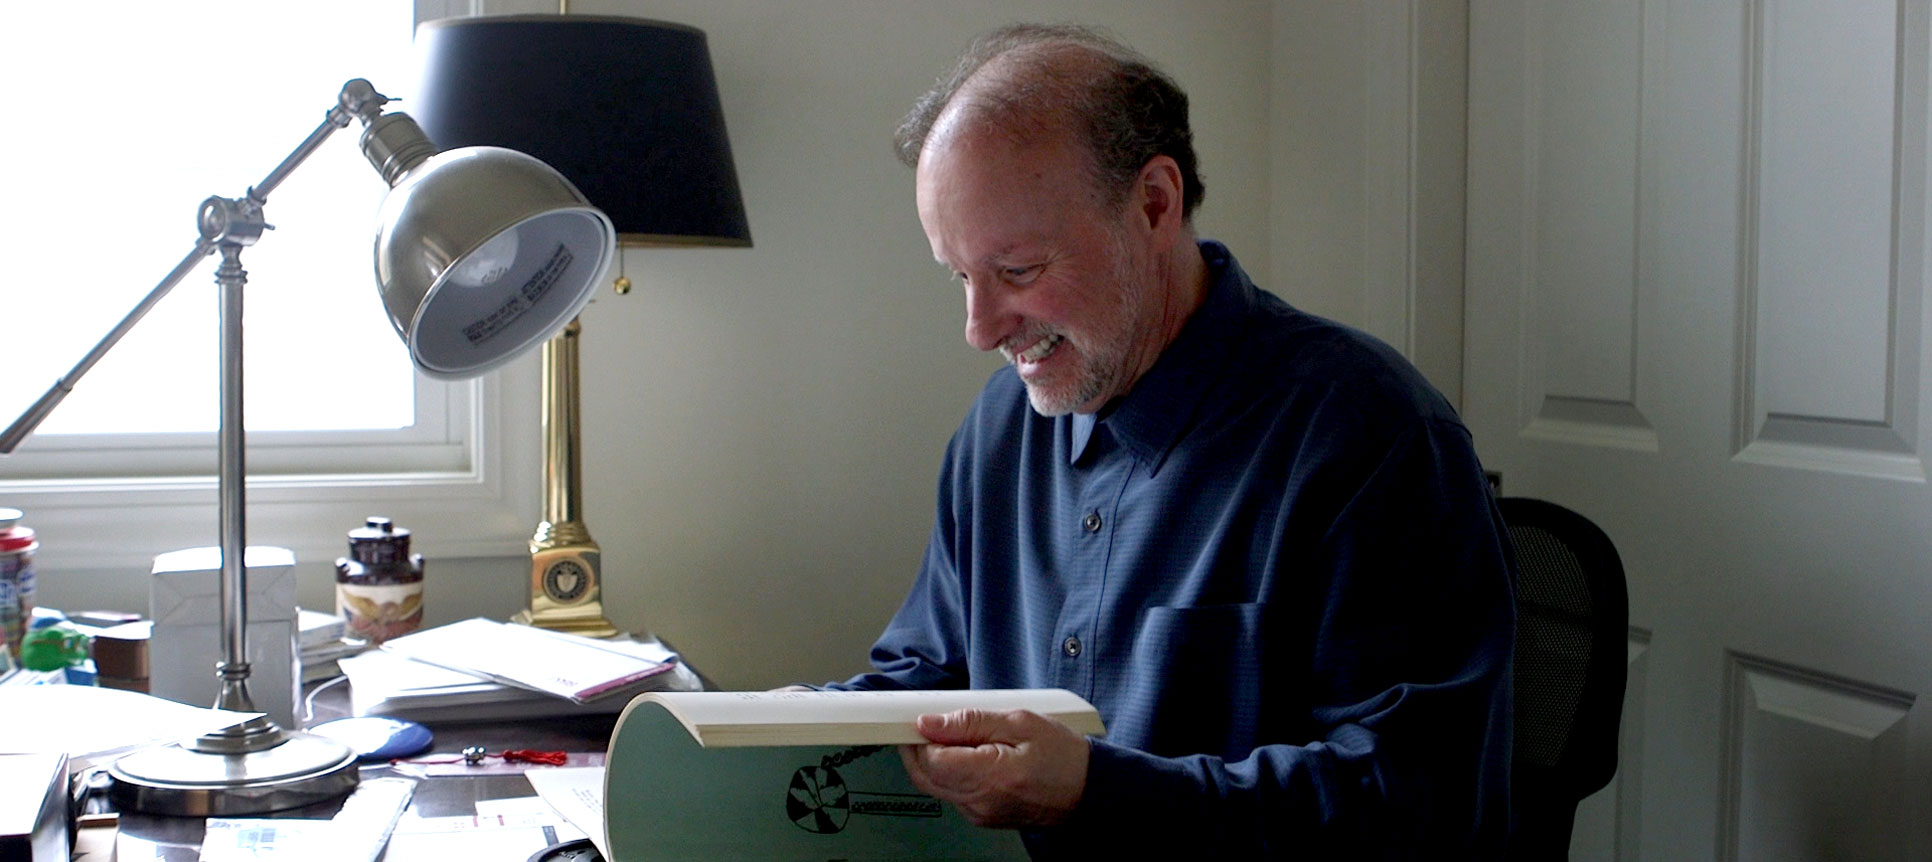 Blaine Hall looks through a book containing one of his poems